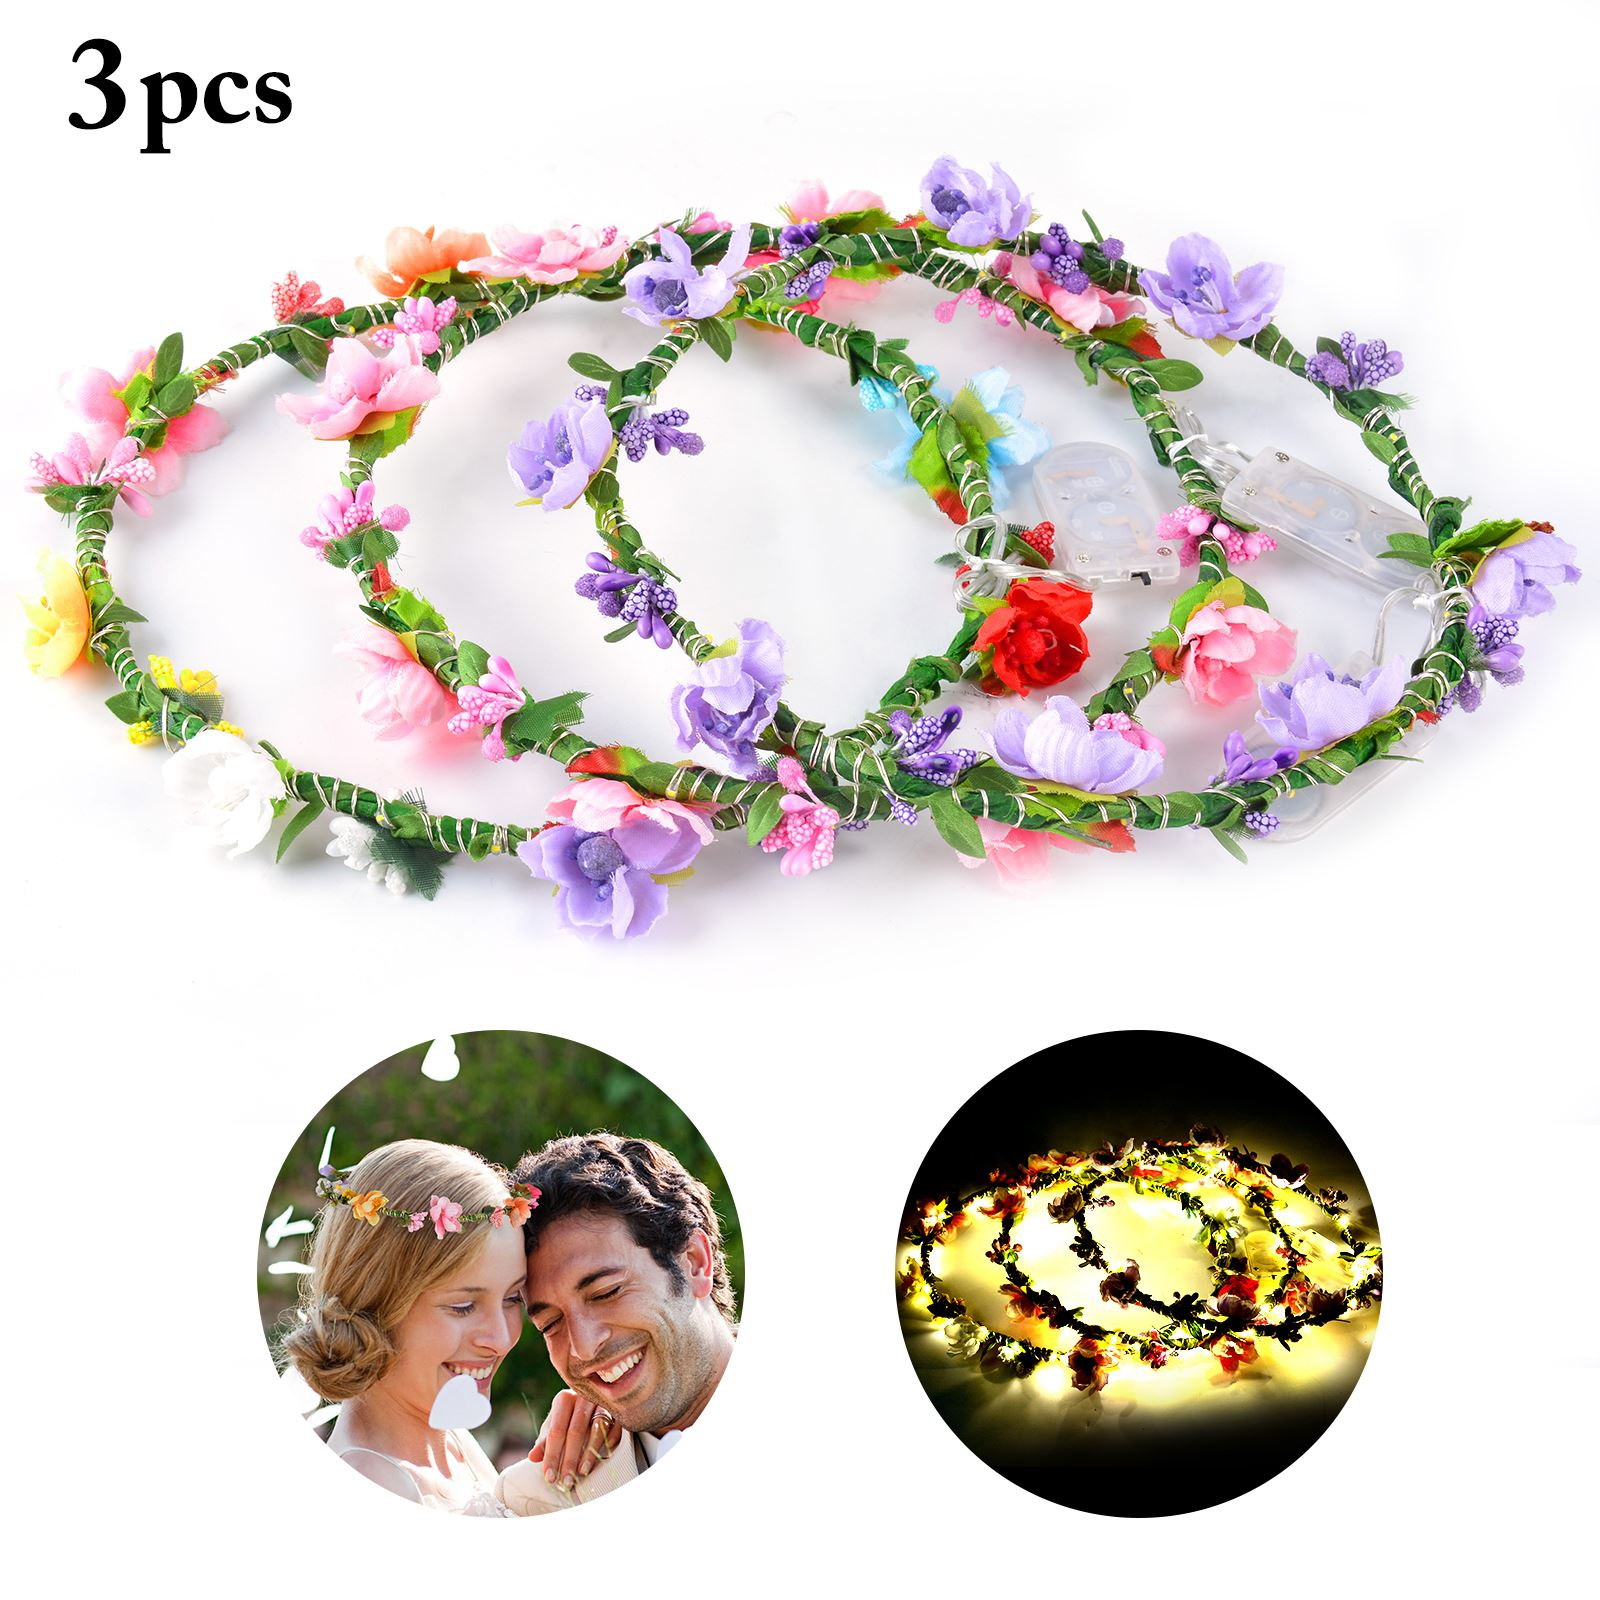 3pcs Wedding Party Crown Flower Headband Led Light Up Hair Wreath Hairband Garlands Women's Christmas Glowing Wreath With The Most Up-To-Date Equipment And Techniques